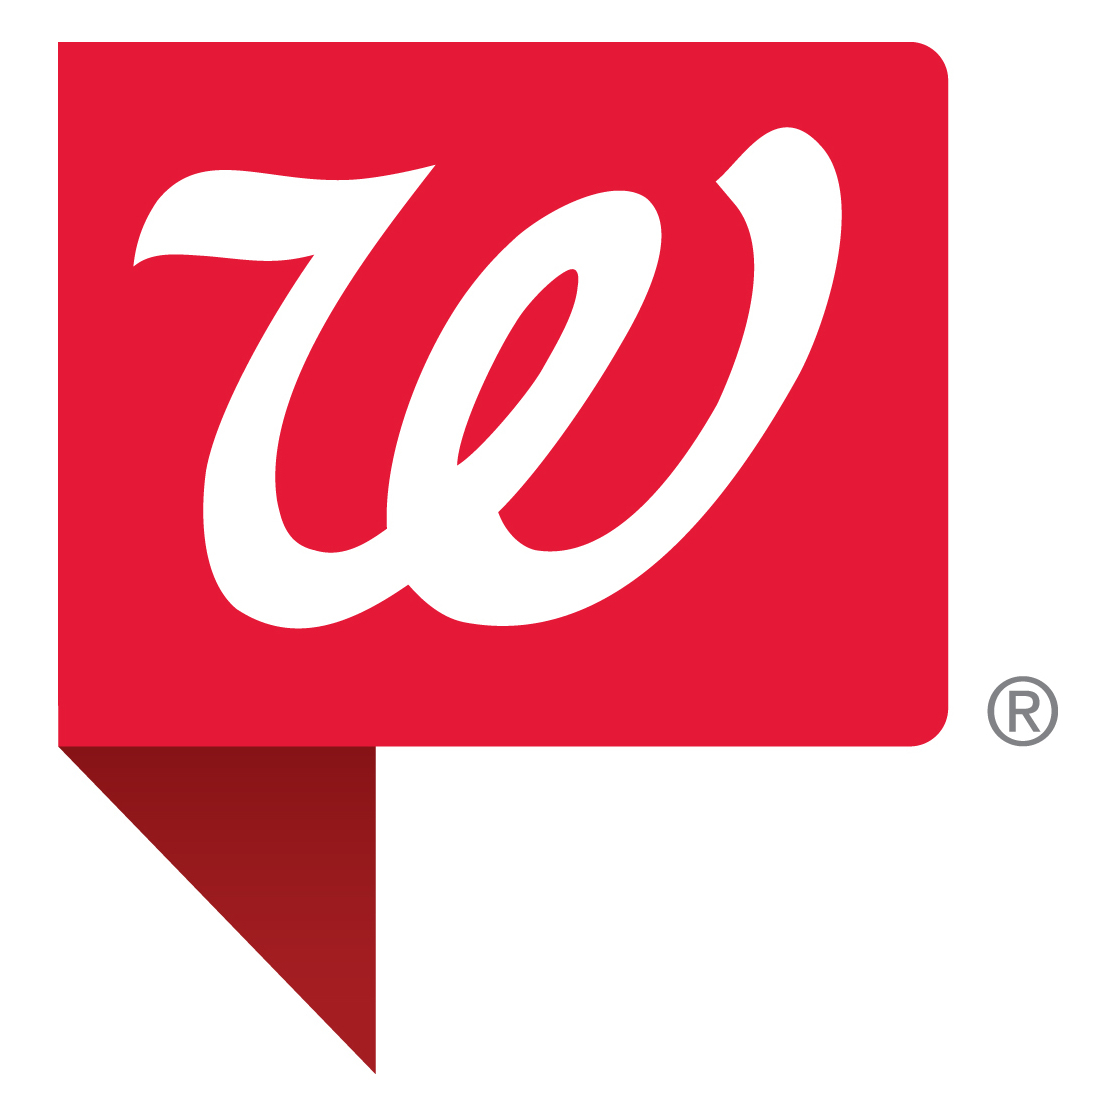 Walgreens Pharmacy at St. Louis University Medical Center